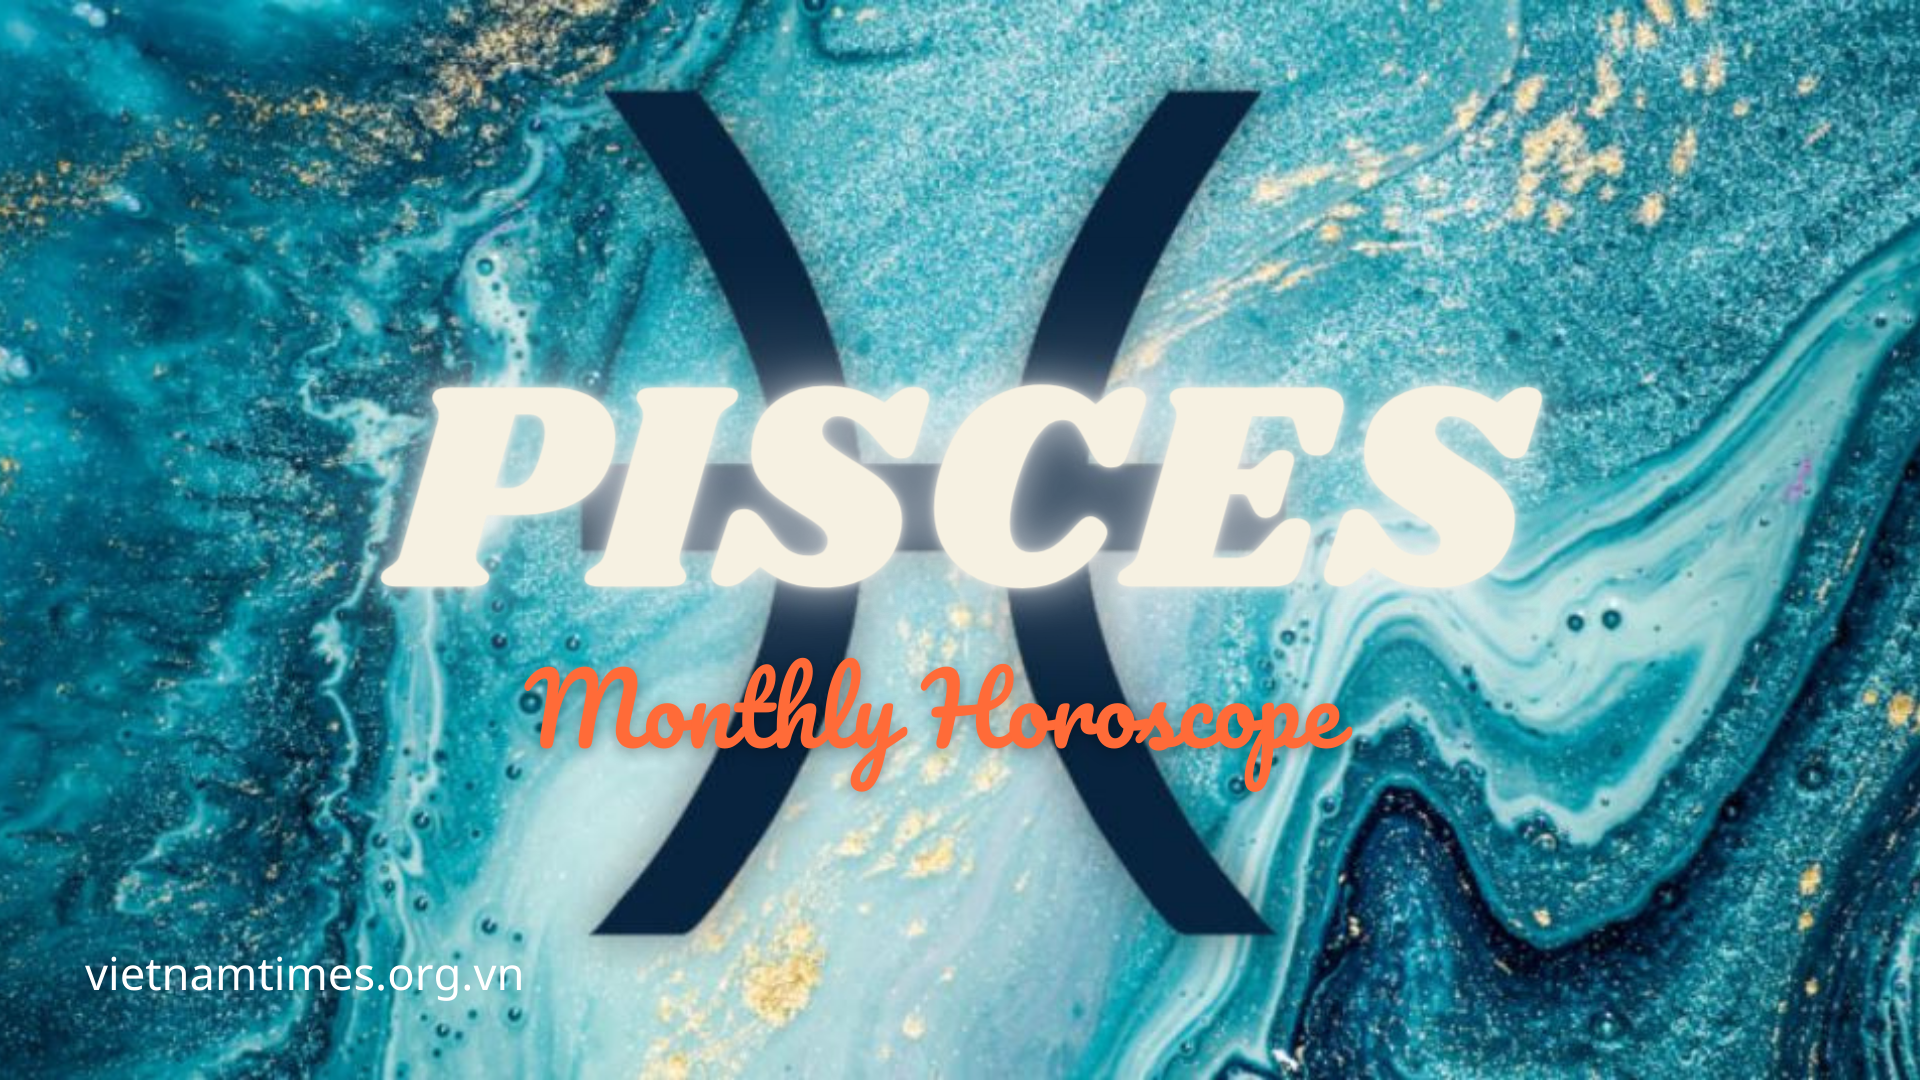 Pisces Horoscope November 2021: Monthly Predictions for Love, Financial, Career and Health